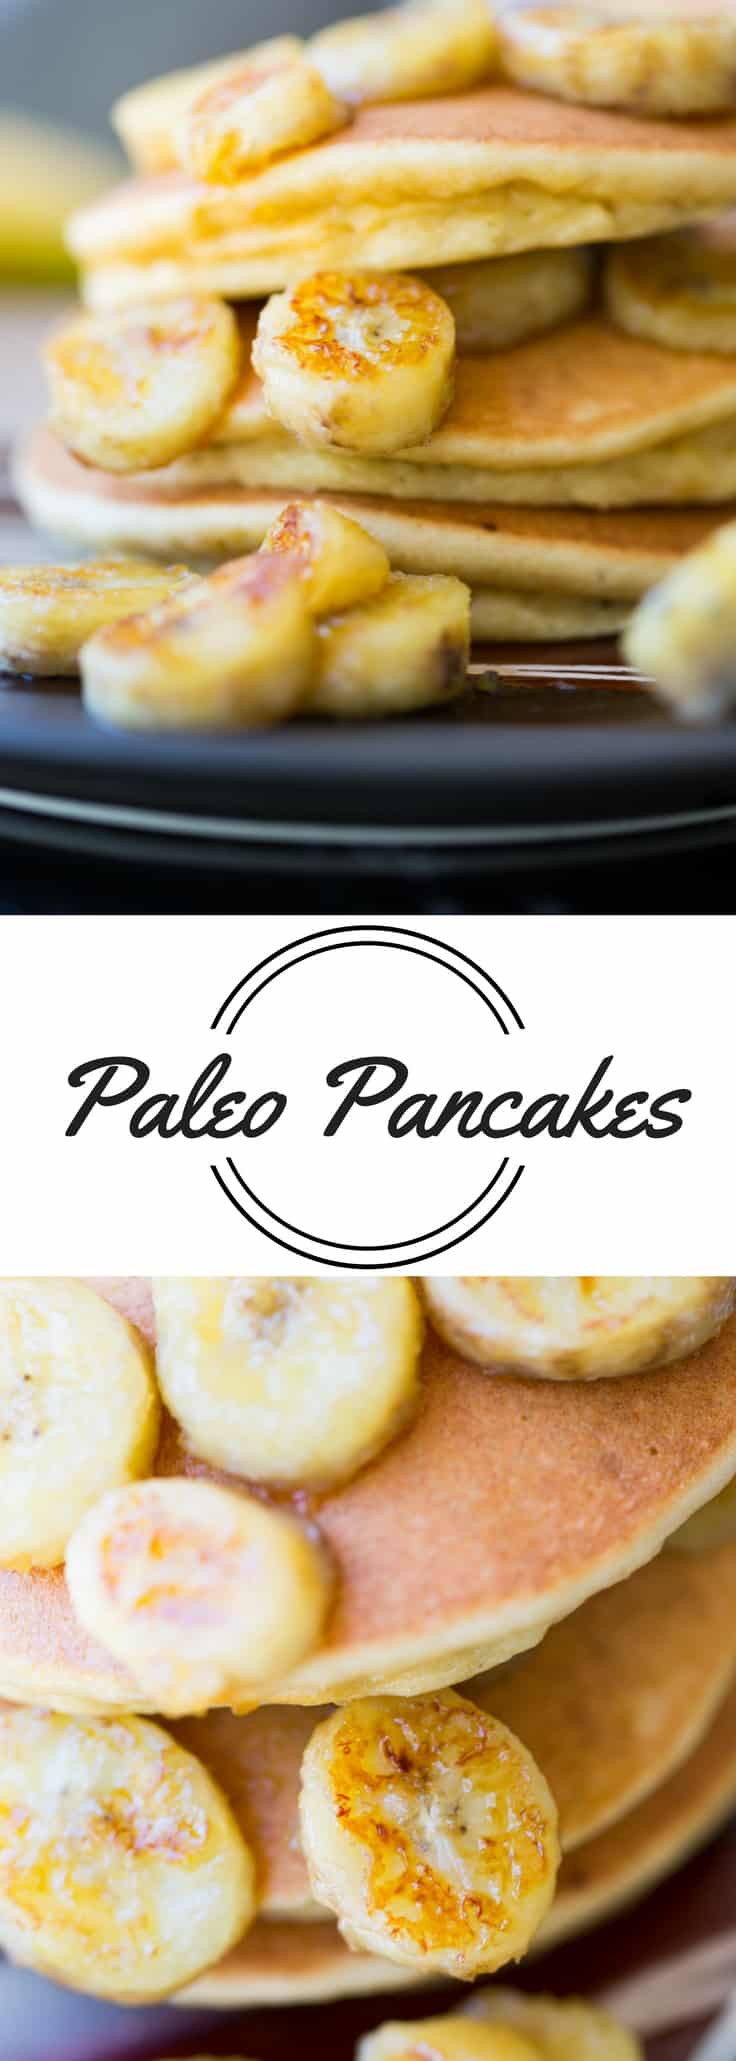 Fluffy paleo pancakes made with Bob's Red Mill Paleo Pancake & Waffle Mix and topped with sweet caramelized bananas.  Paleo never tasted so good!